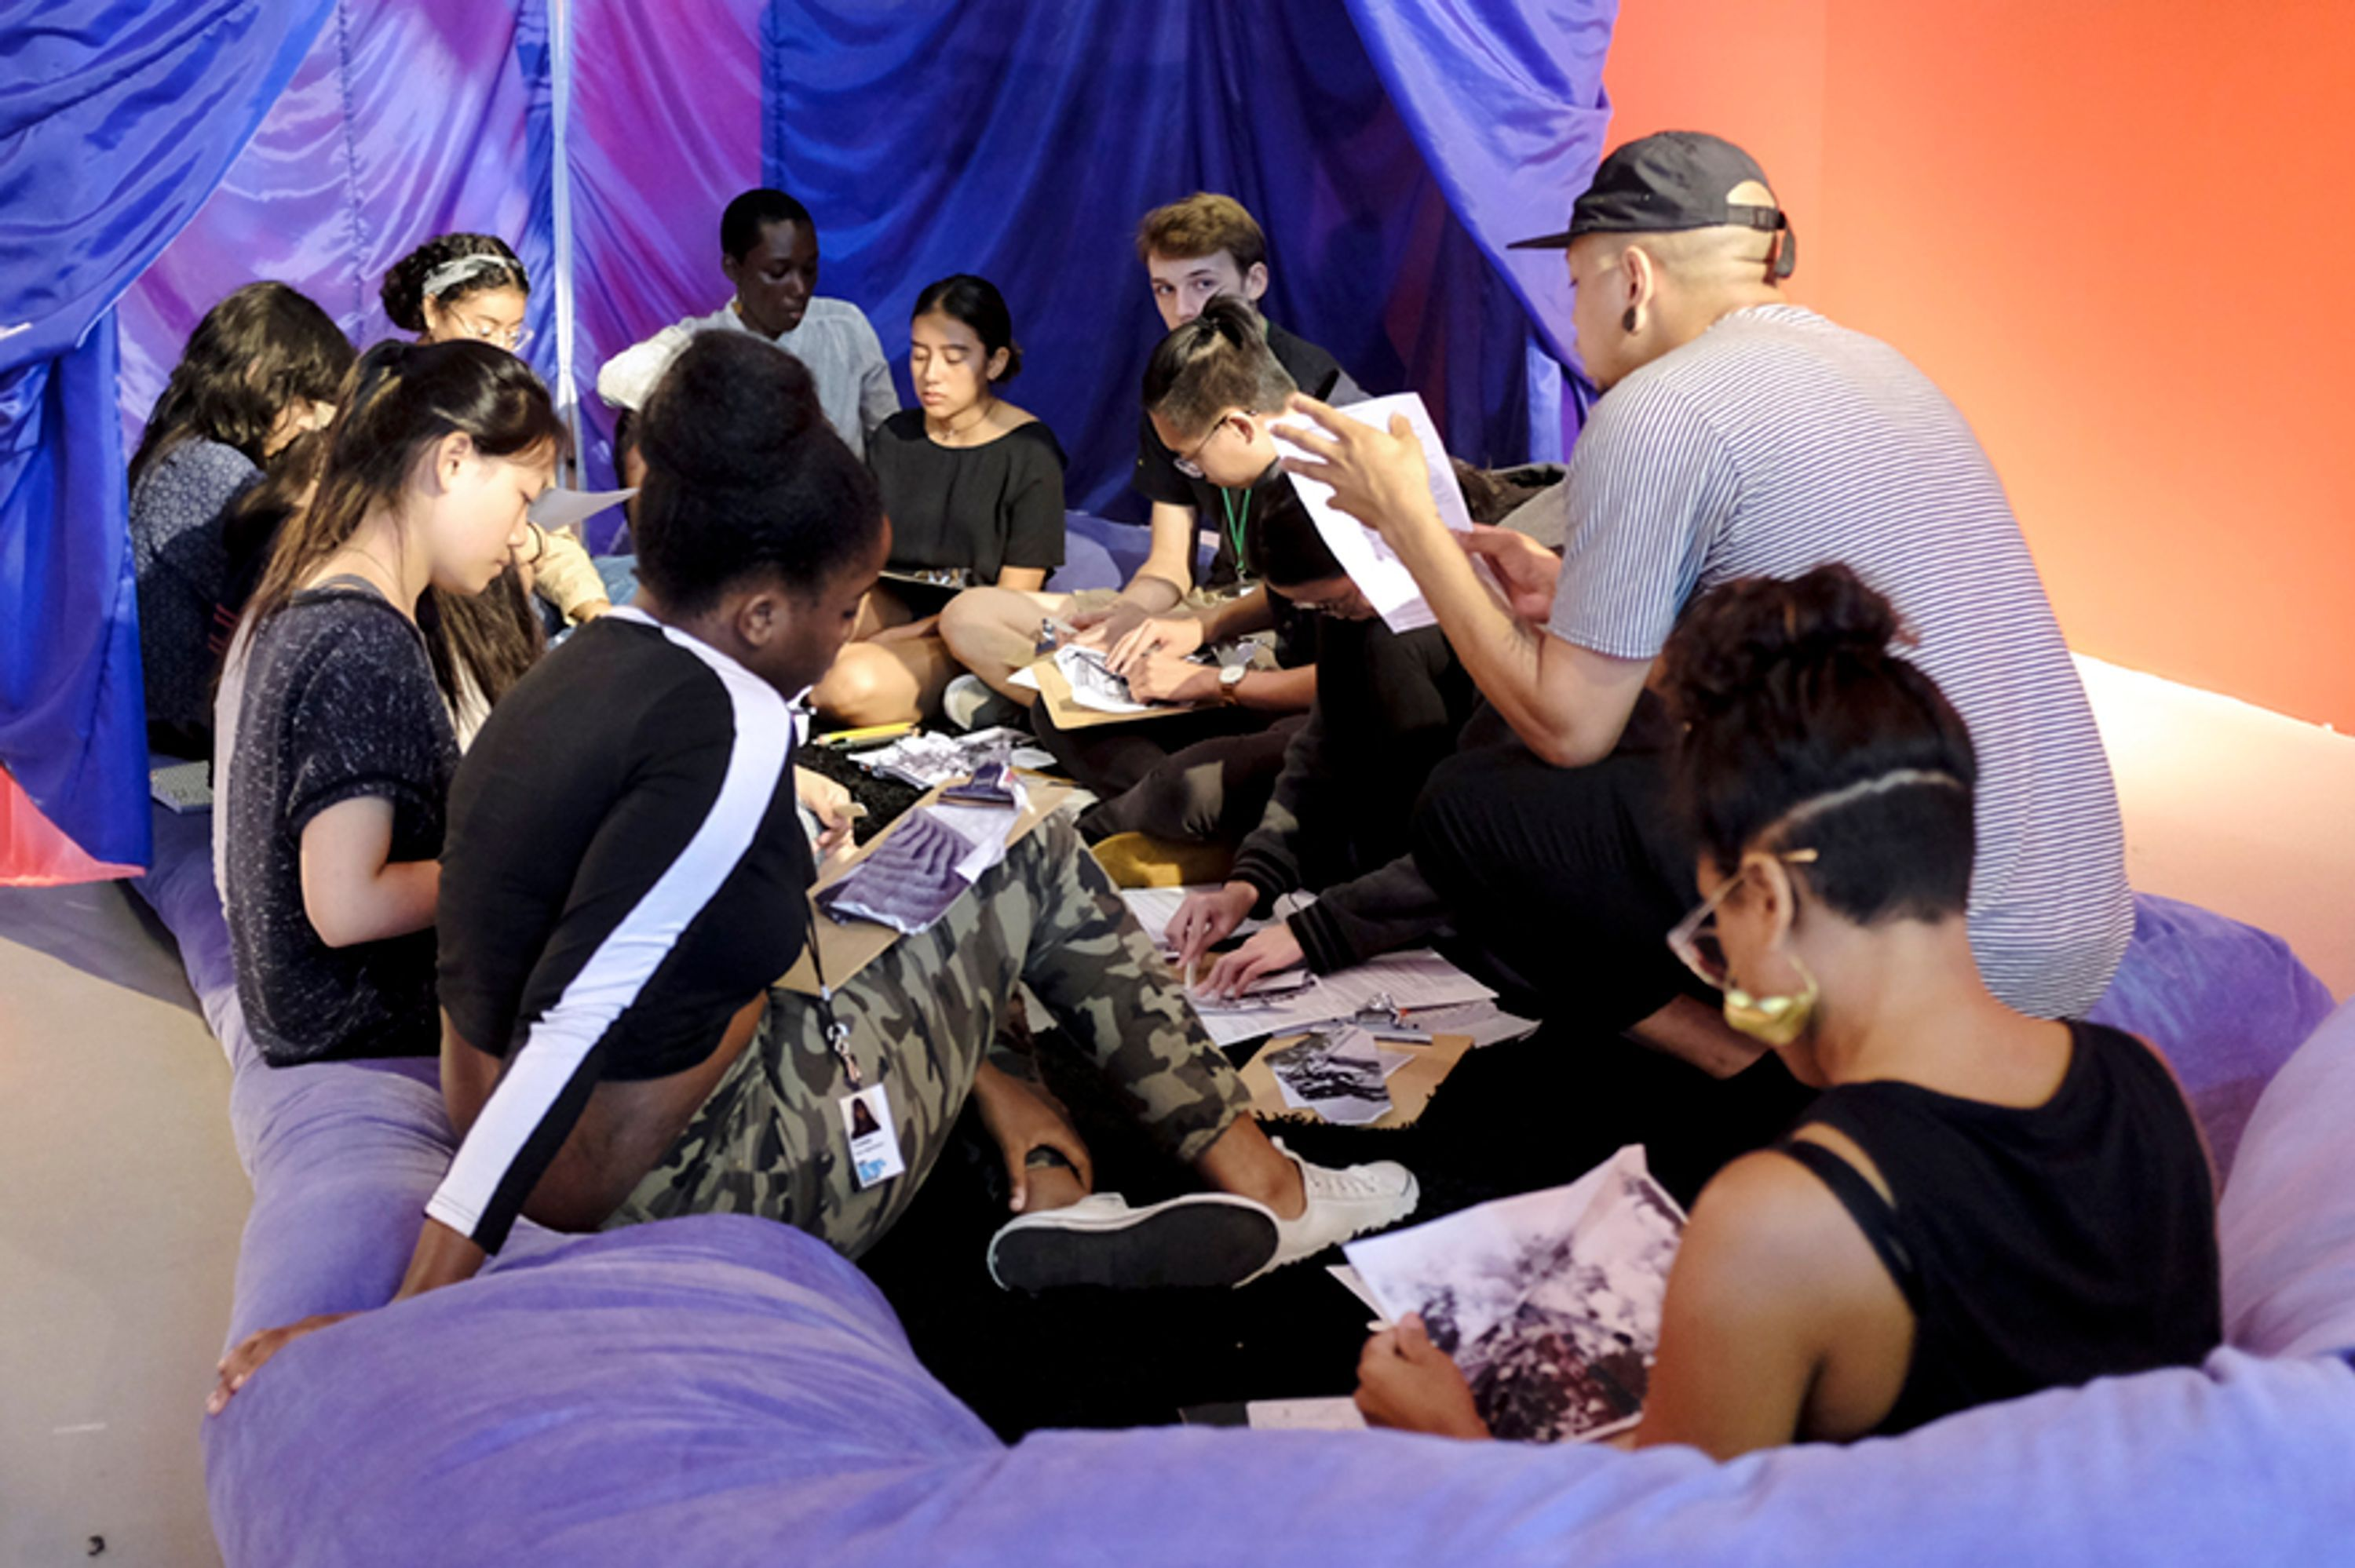 Collage workshop in The Black School installation at New Museum